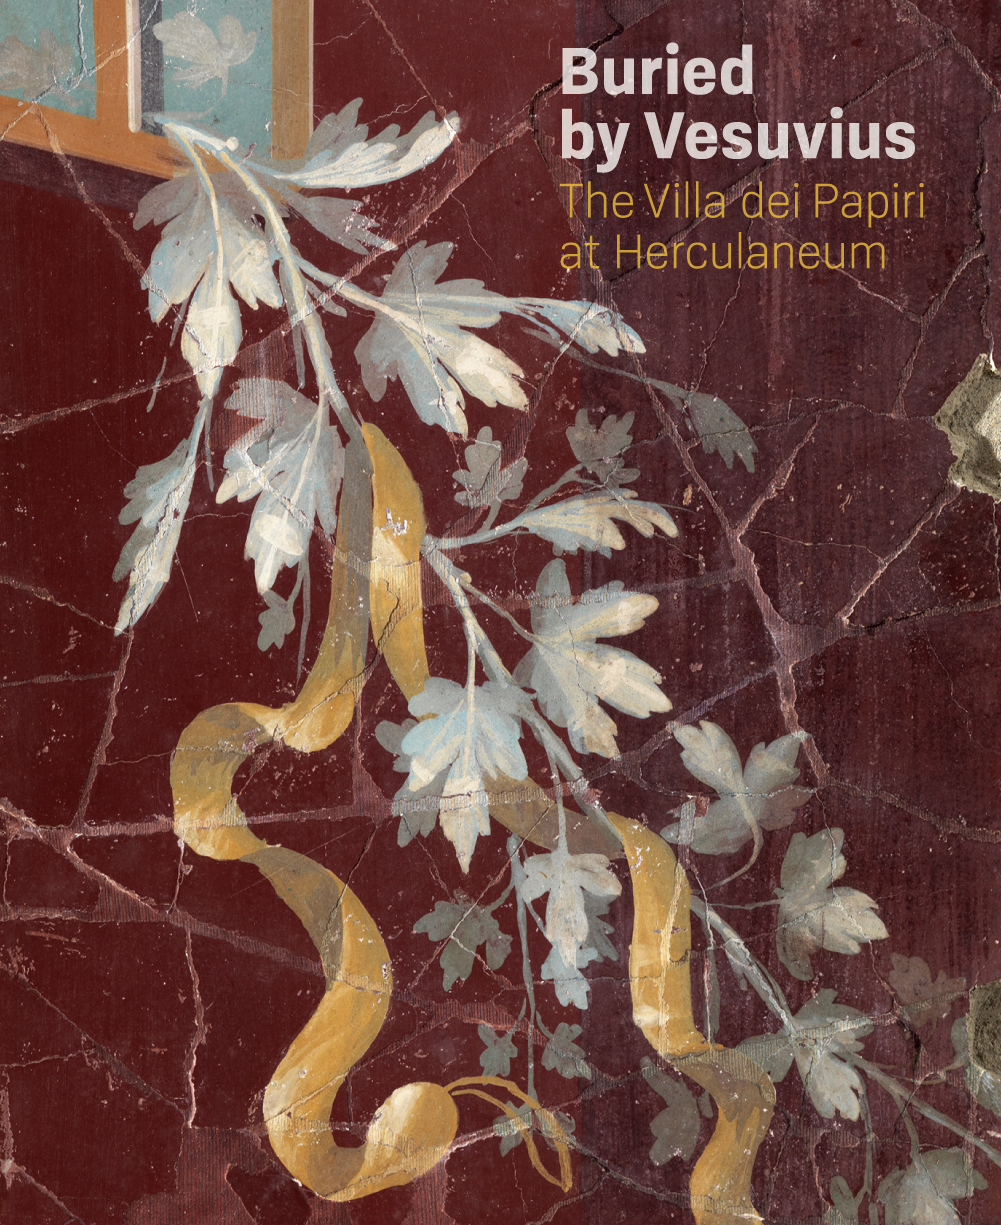 Buried by Vesuvius, book cover. Image courtesy of J Paul Getty Museum.